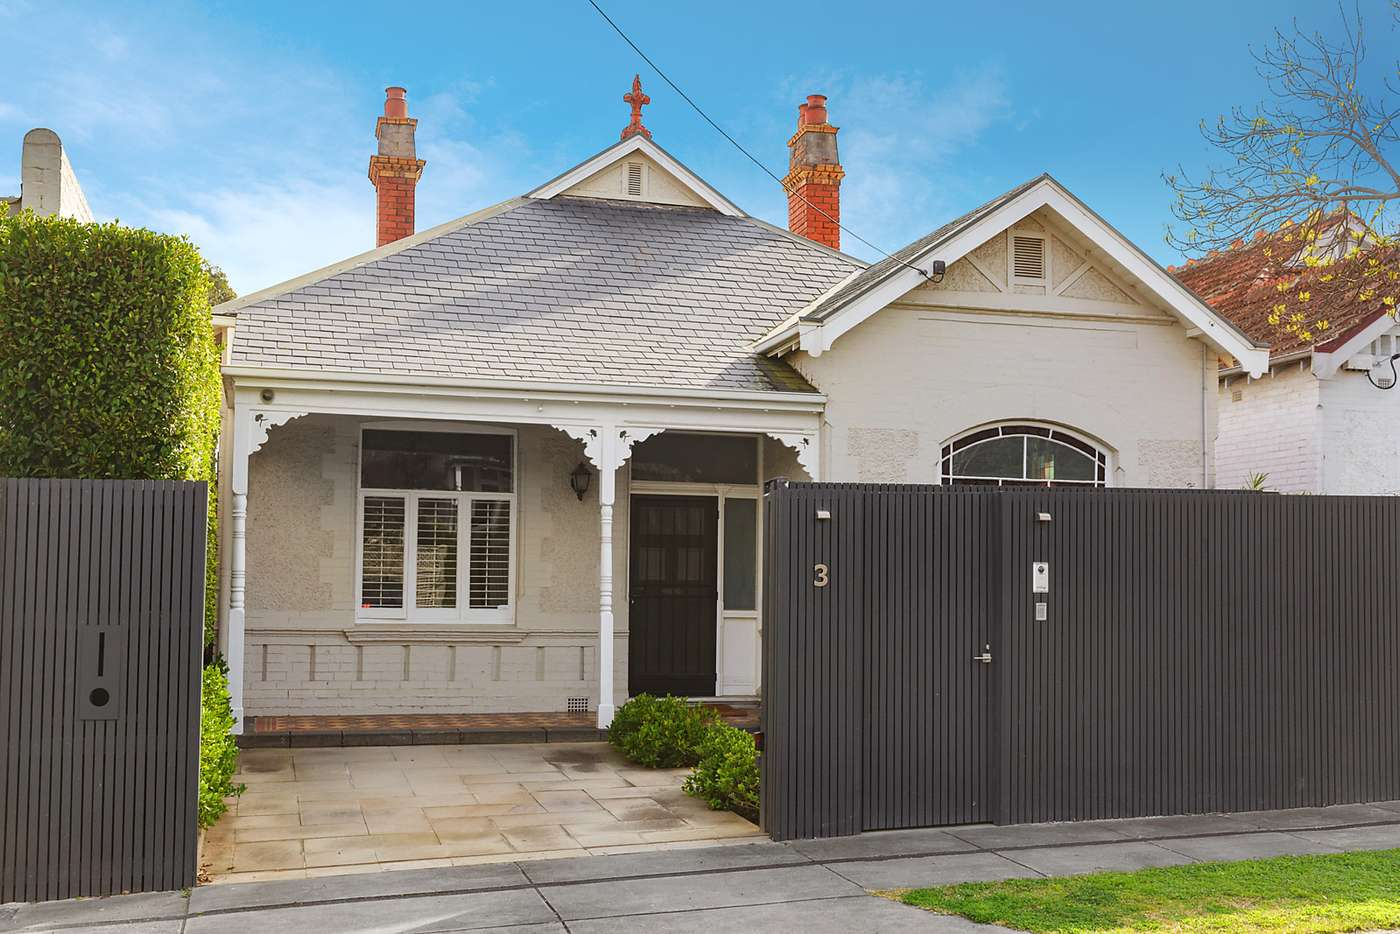 Main view of Homely house listing, 3 Baxter Street, Toorak VIC 3142